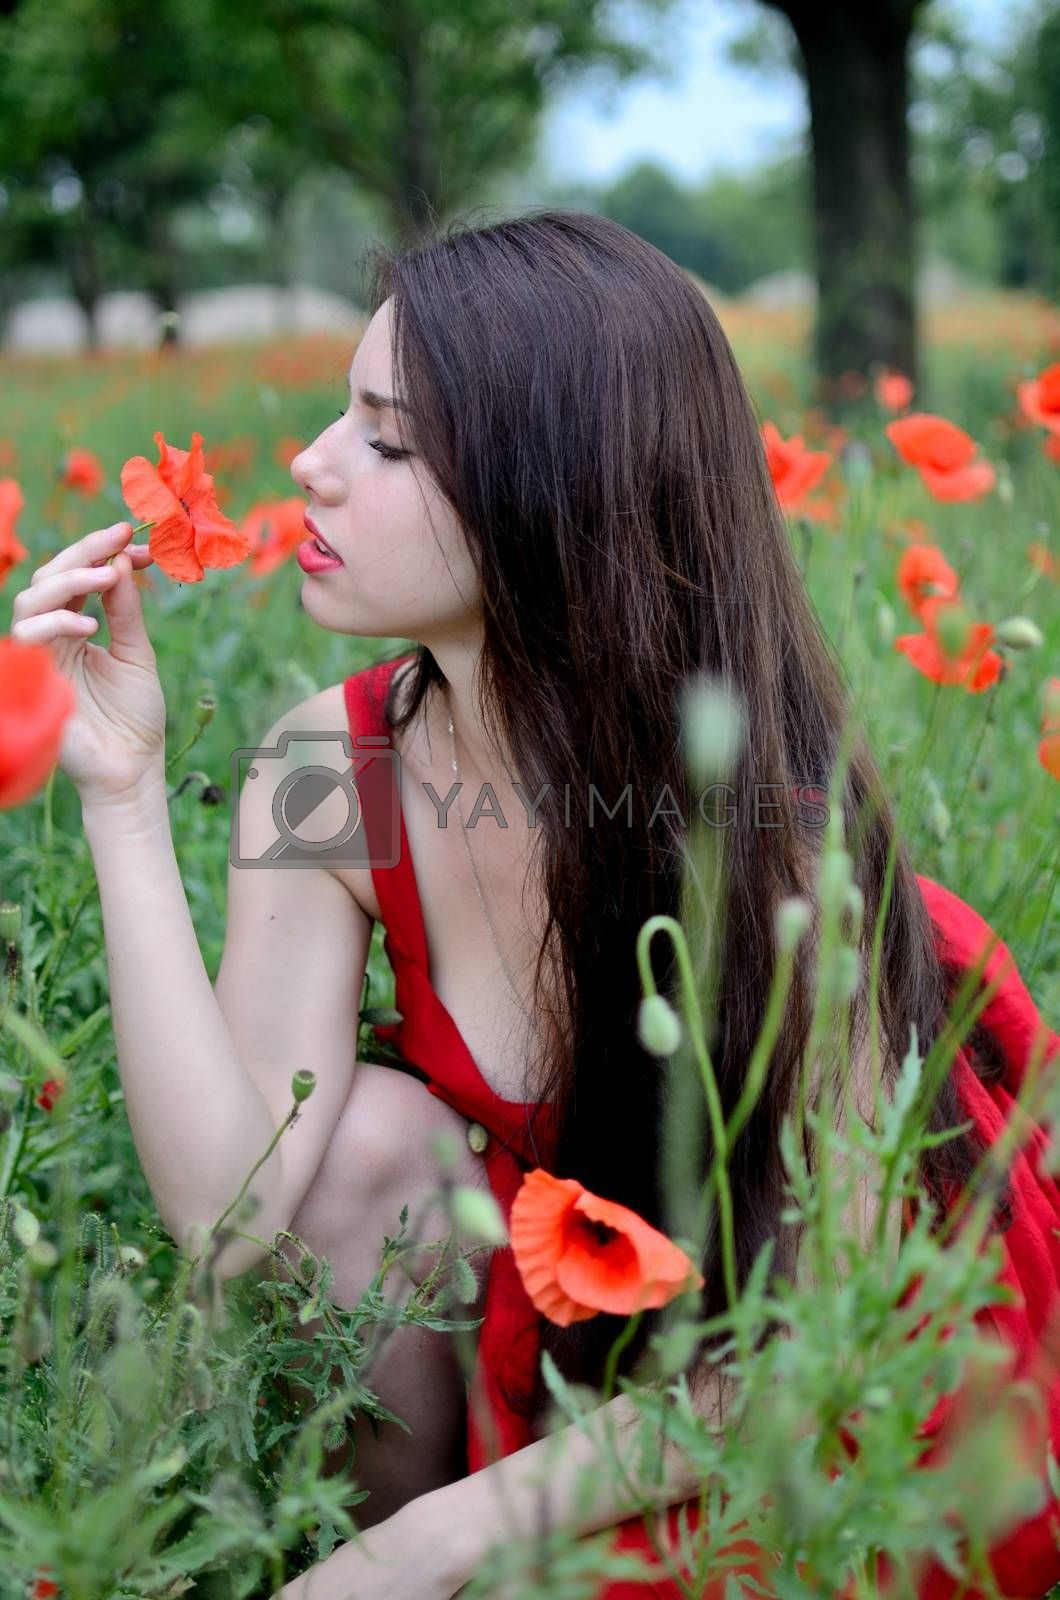 Royalty free image of Girl smells flower by bartekchiny